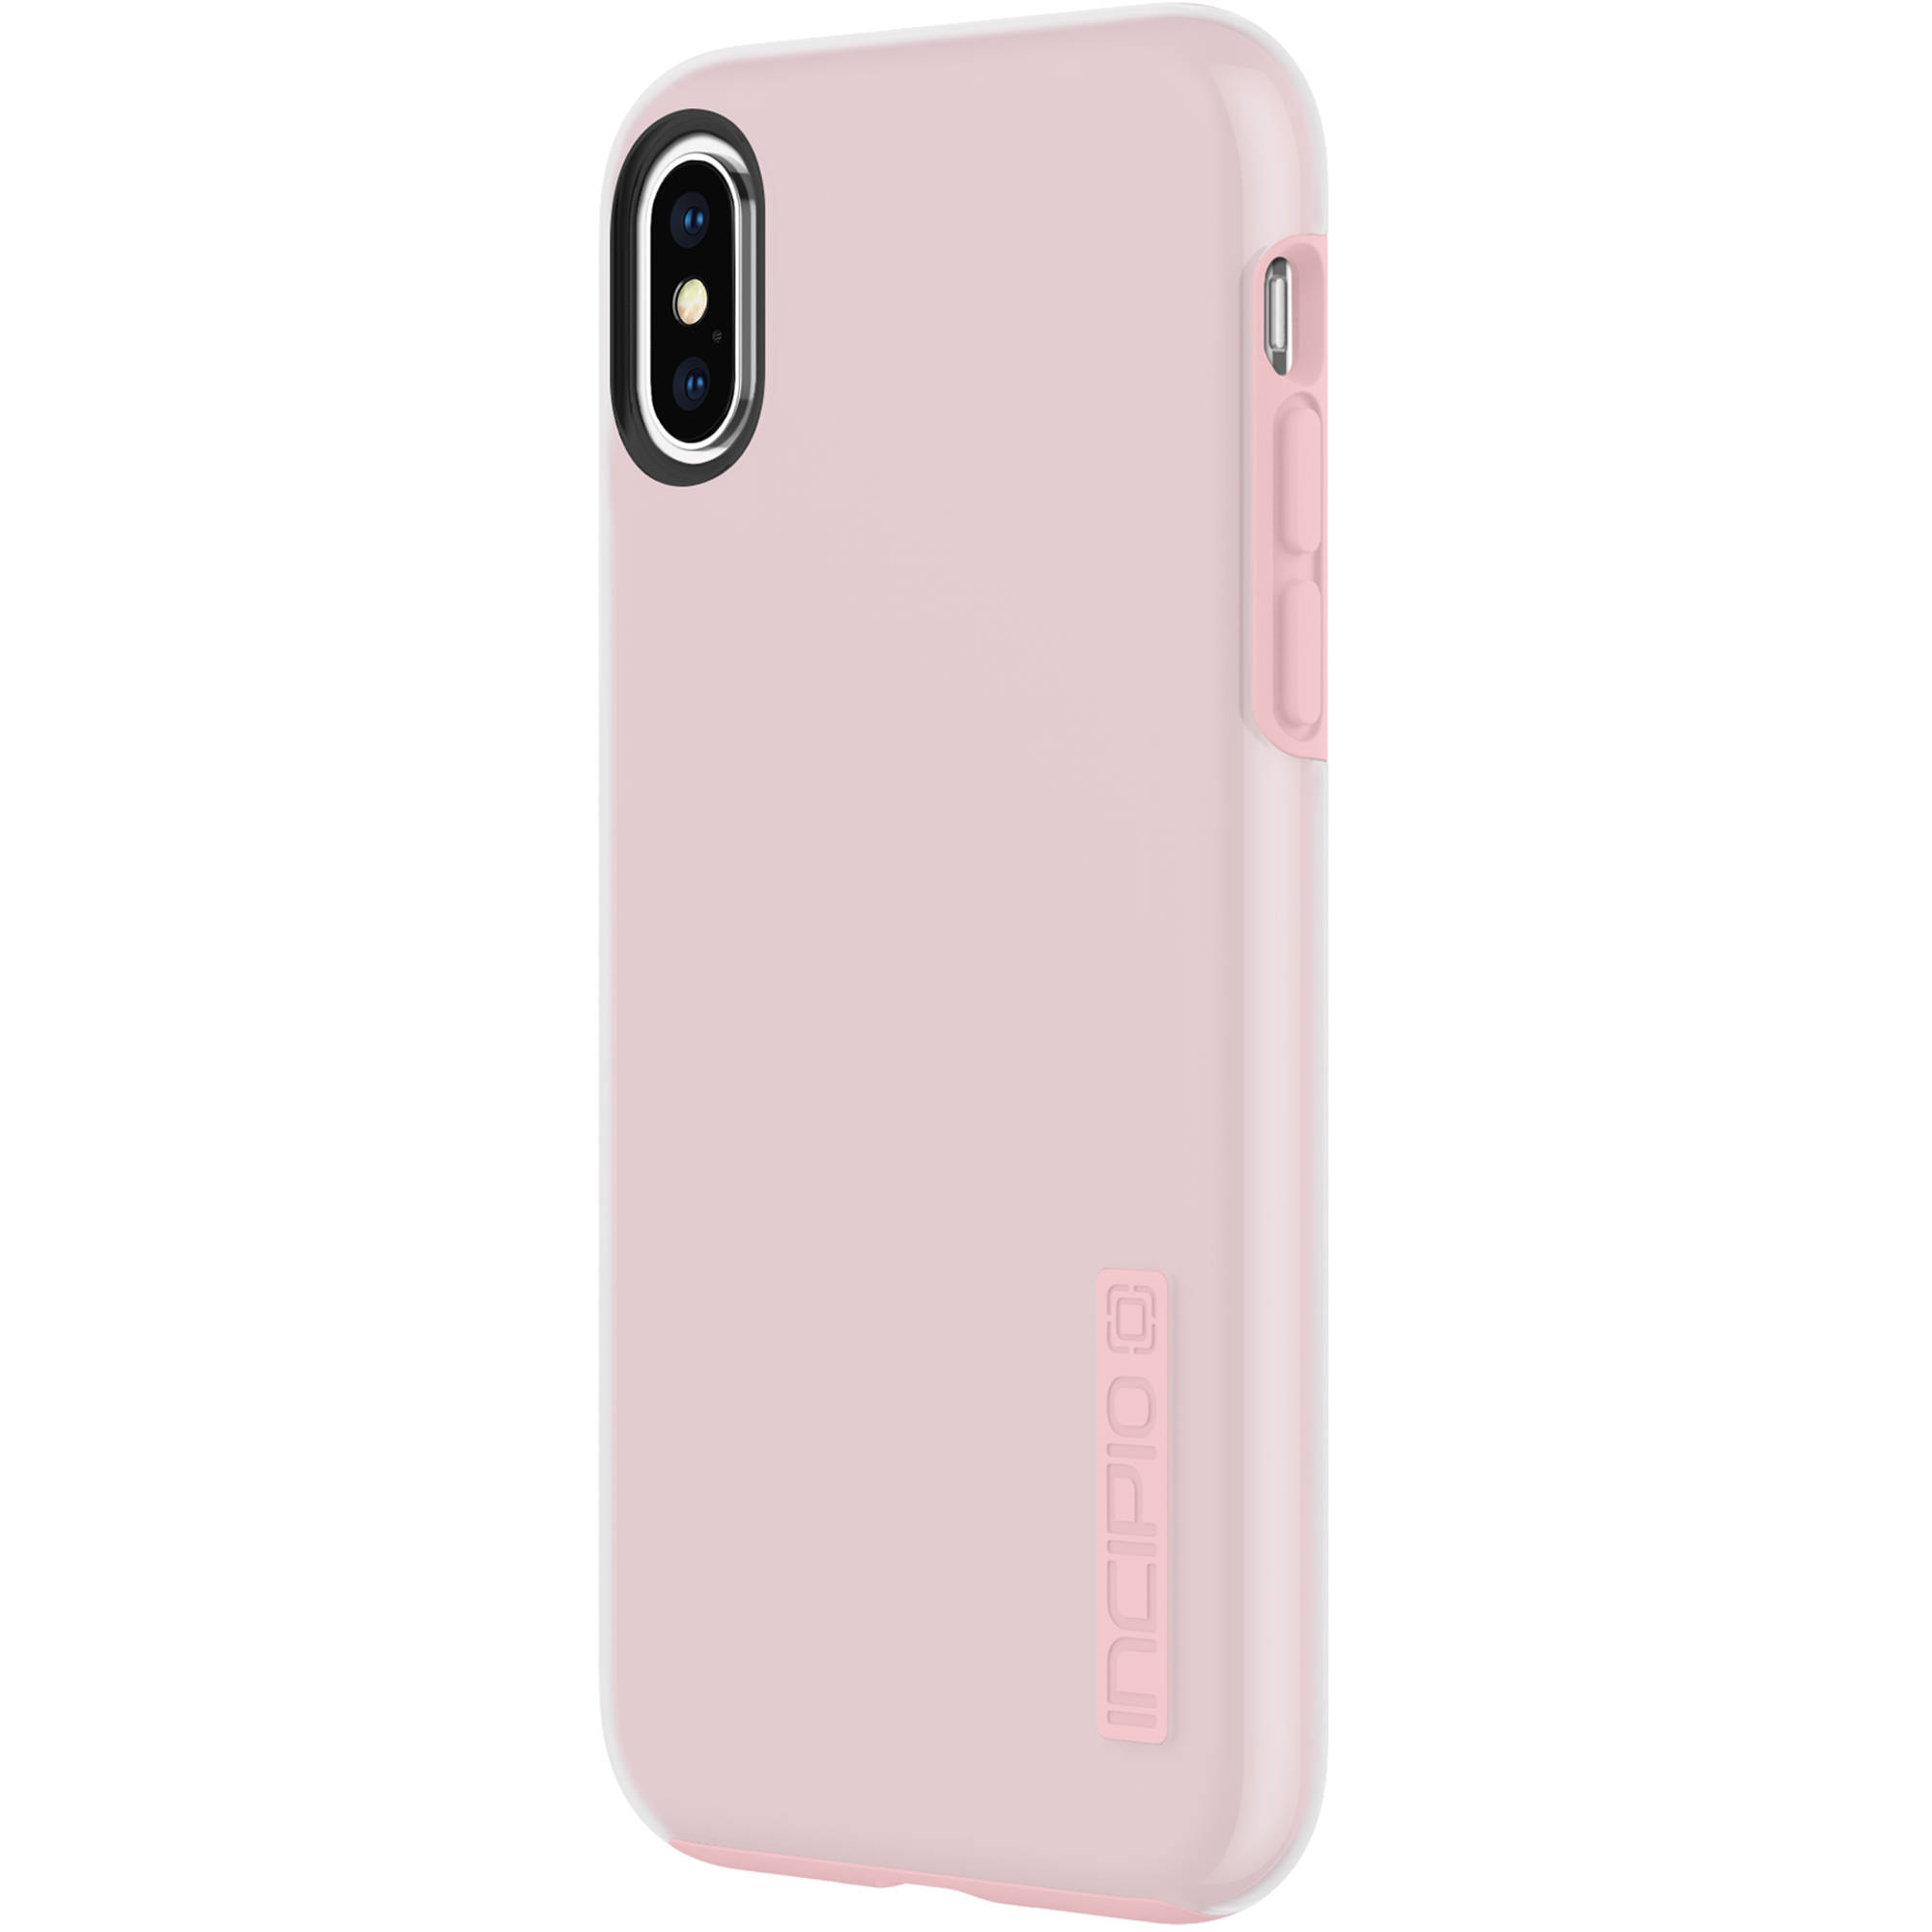 new style 9f3ae fac7d Incipio DualPro Case for iPhone Xs (Raspberry Ice) IPH-1776-RBI